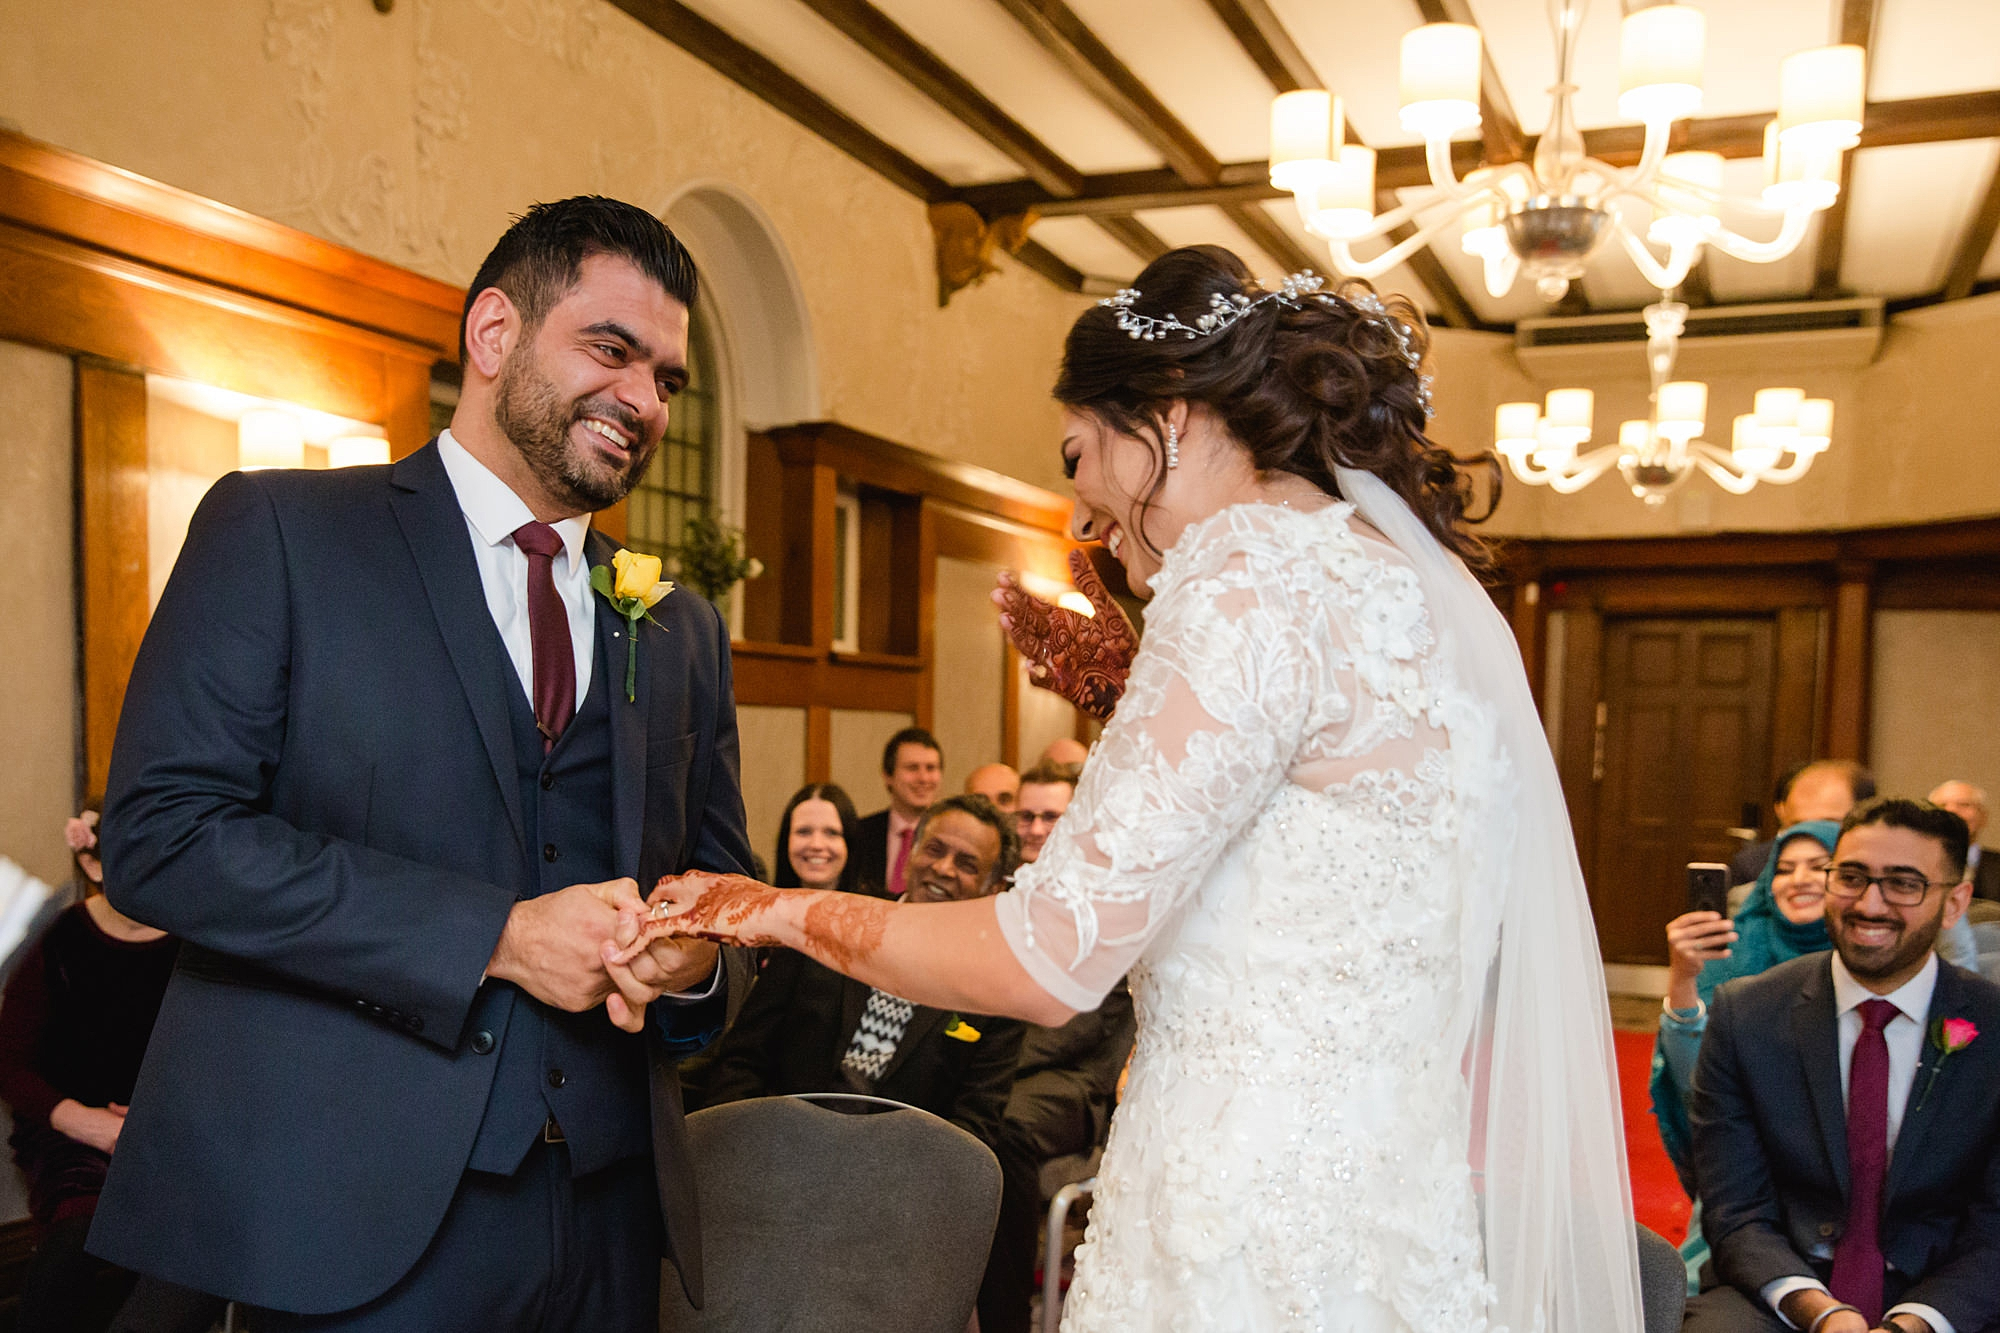 Richmond Hill Hotel wedding photography bride and groom laughing during ceremony